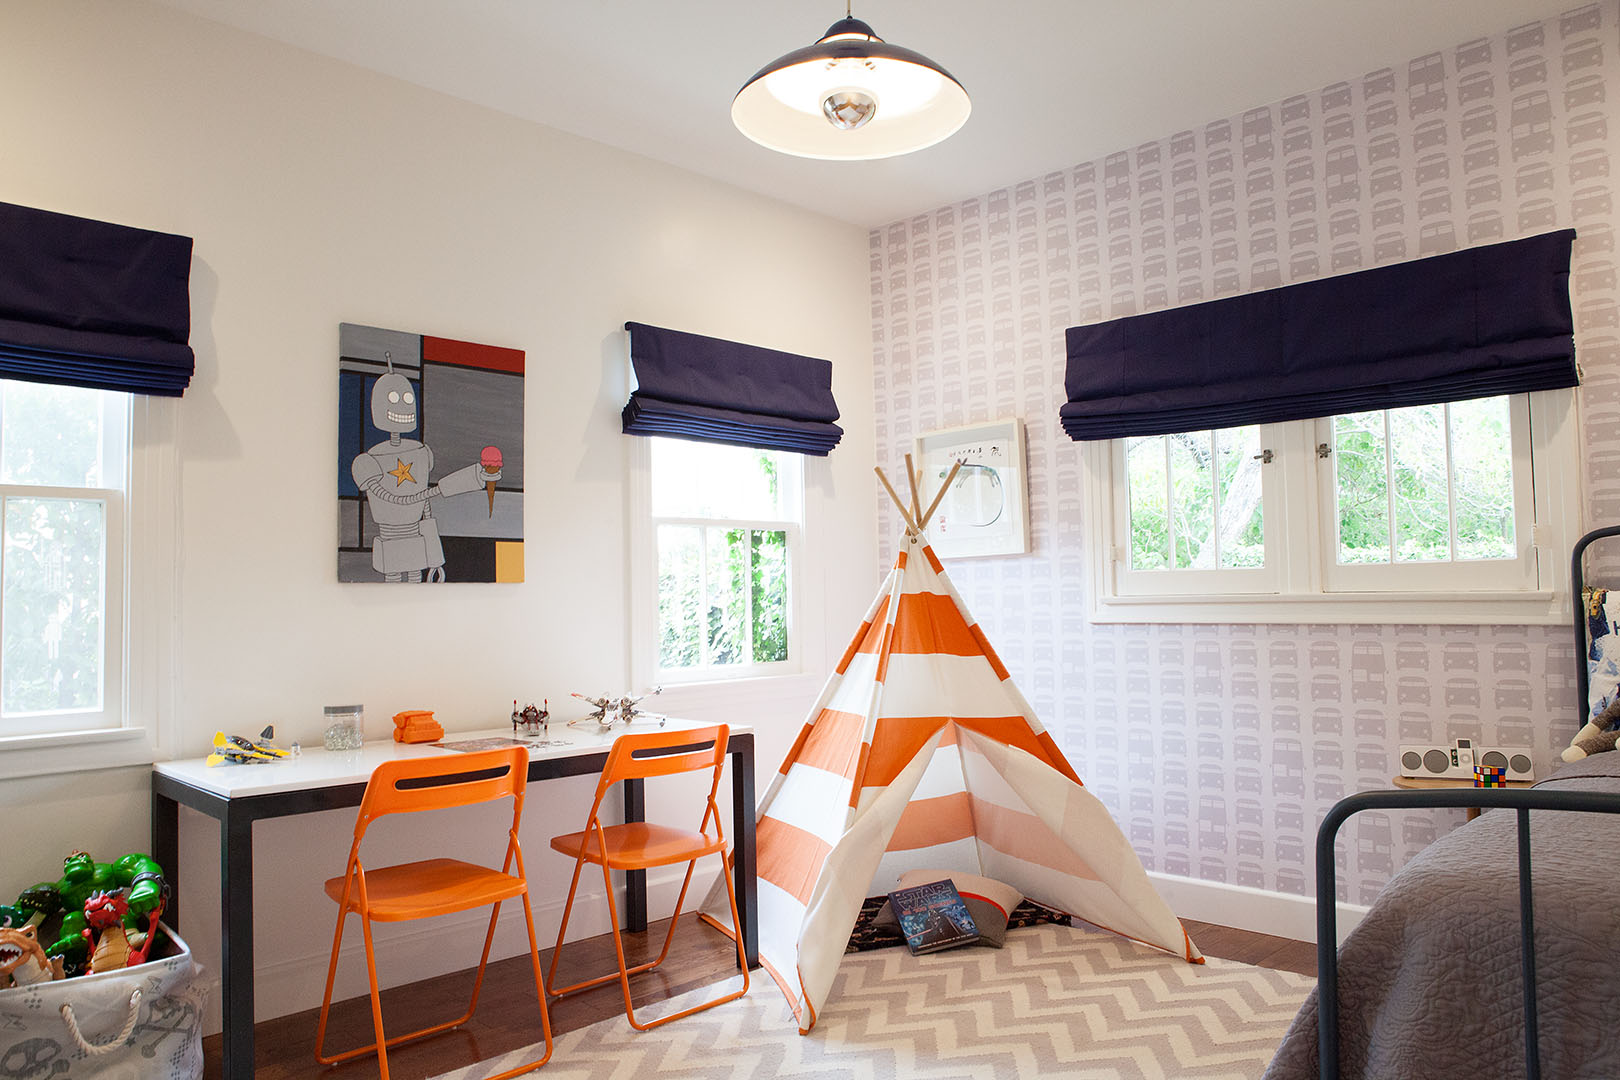 Children room interior design in Oakland, CA